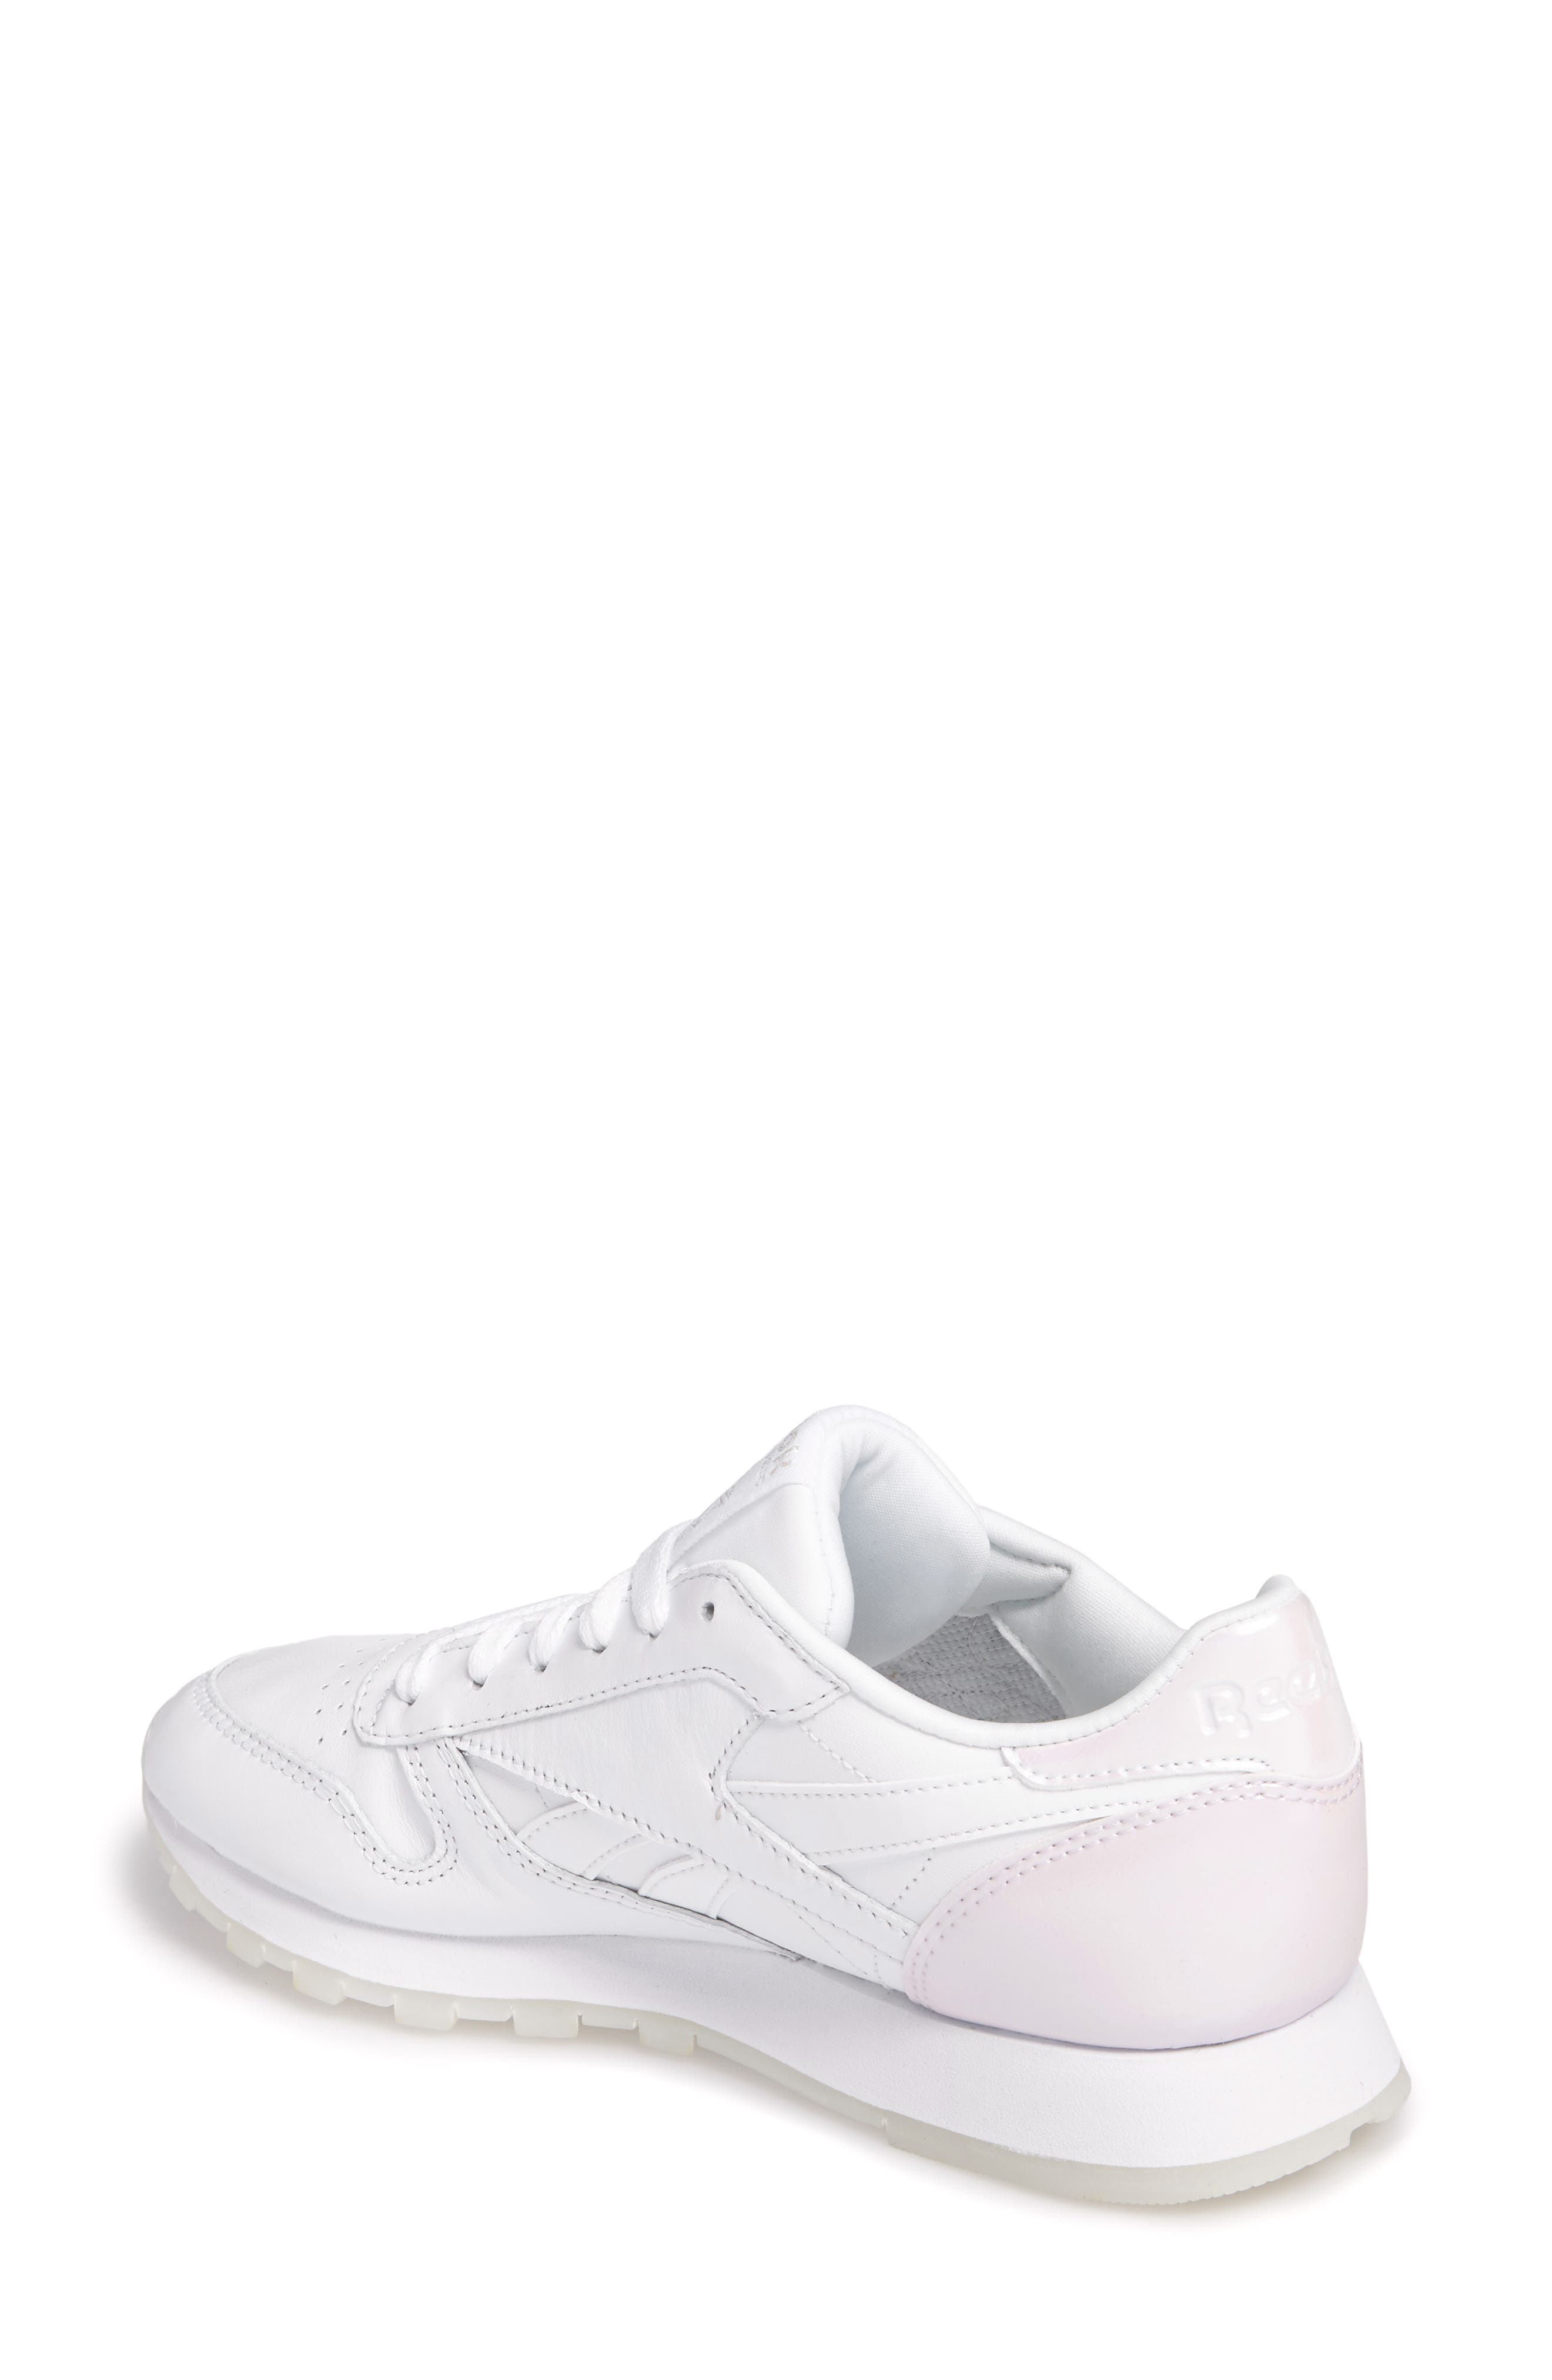 Classic Leather Sneaker,                             Alternate thumbnail 2, color,                             White/ White/ Ice Pearl